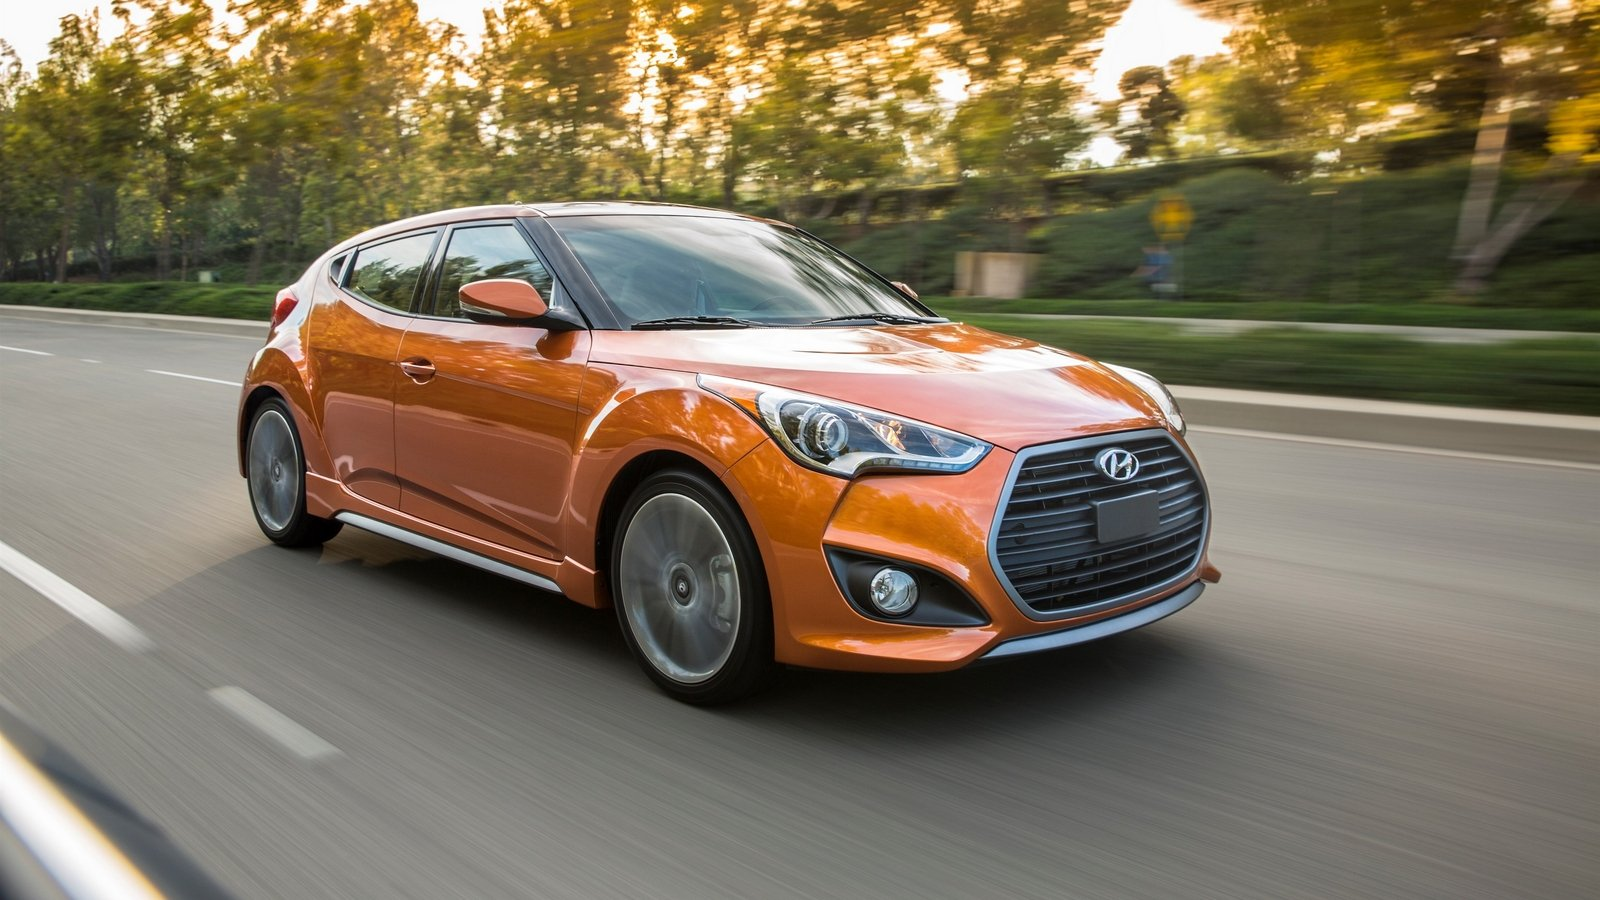 2016 hyundai veloster turbo picture 617109 car review top speed. Black Bedroom Furniture Sets. Home Design Ideas